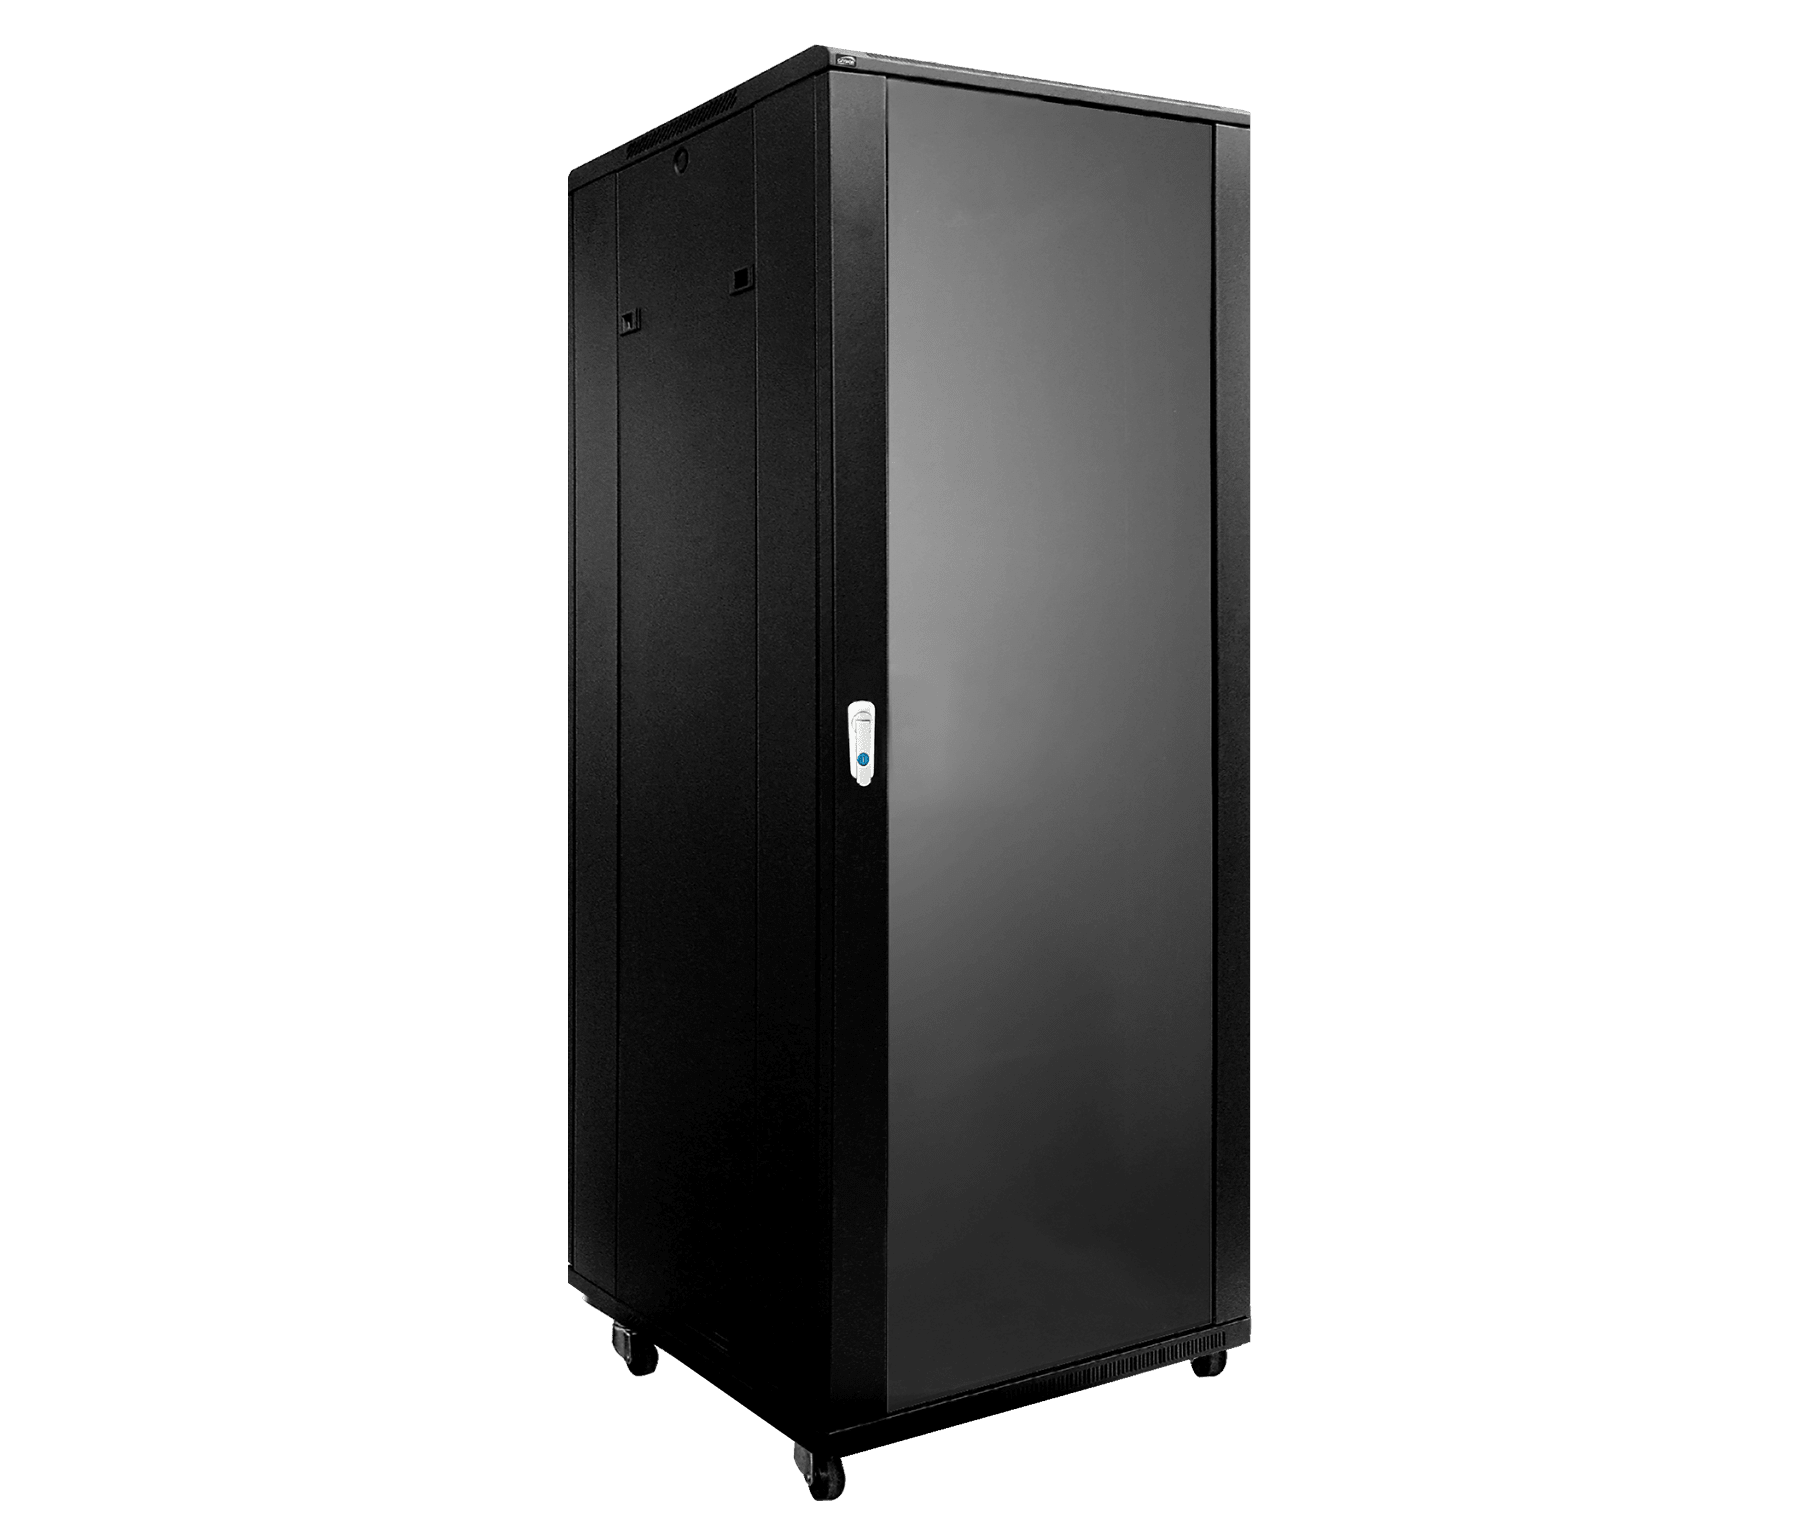 "SPR632 - 19"" rack cabinet - 32 units - 600mm W x 600mm D"